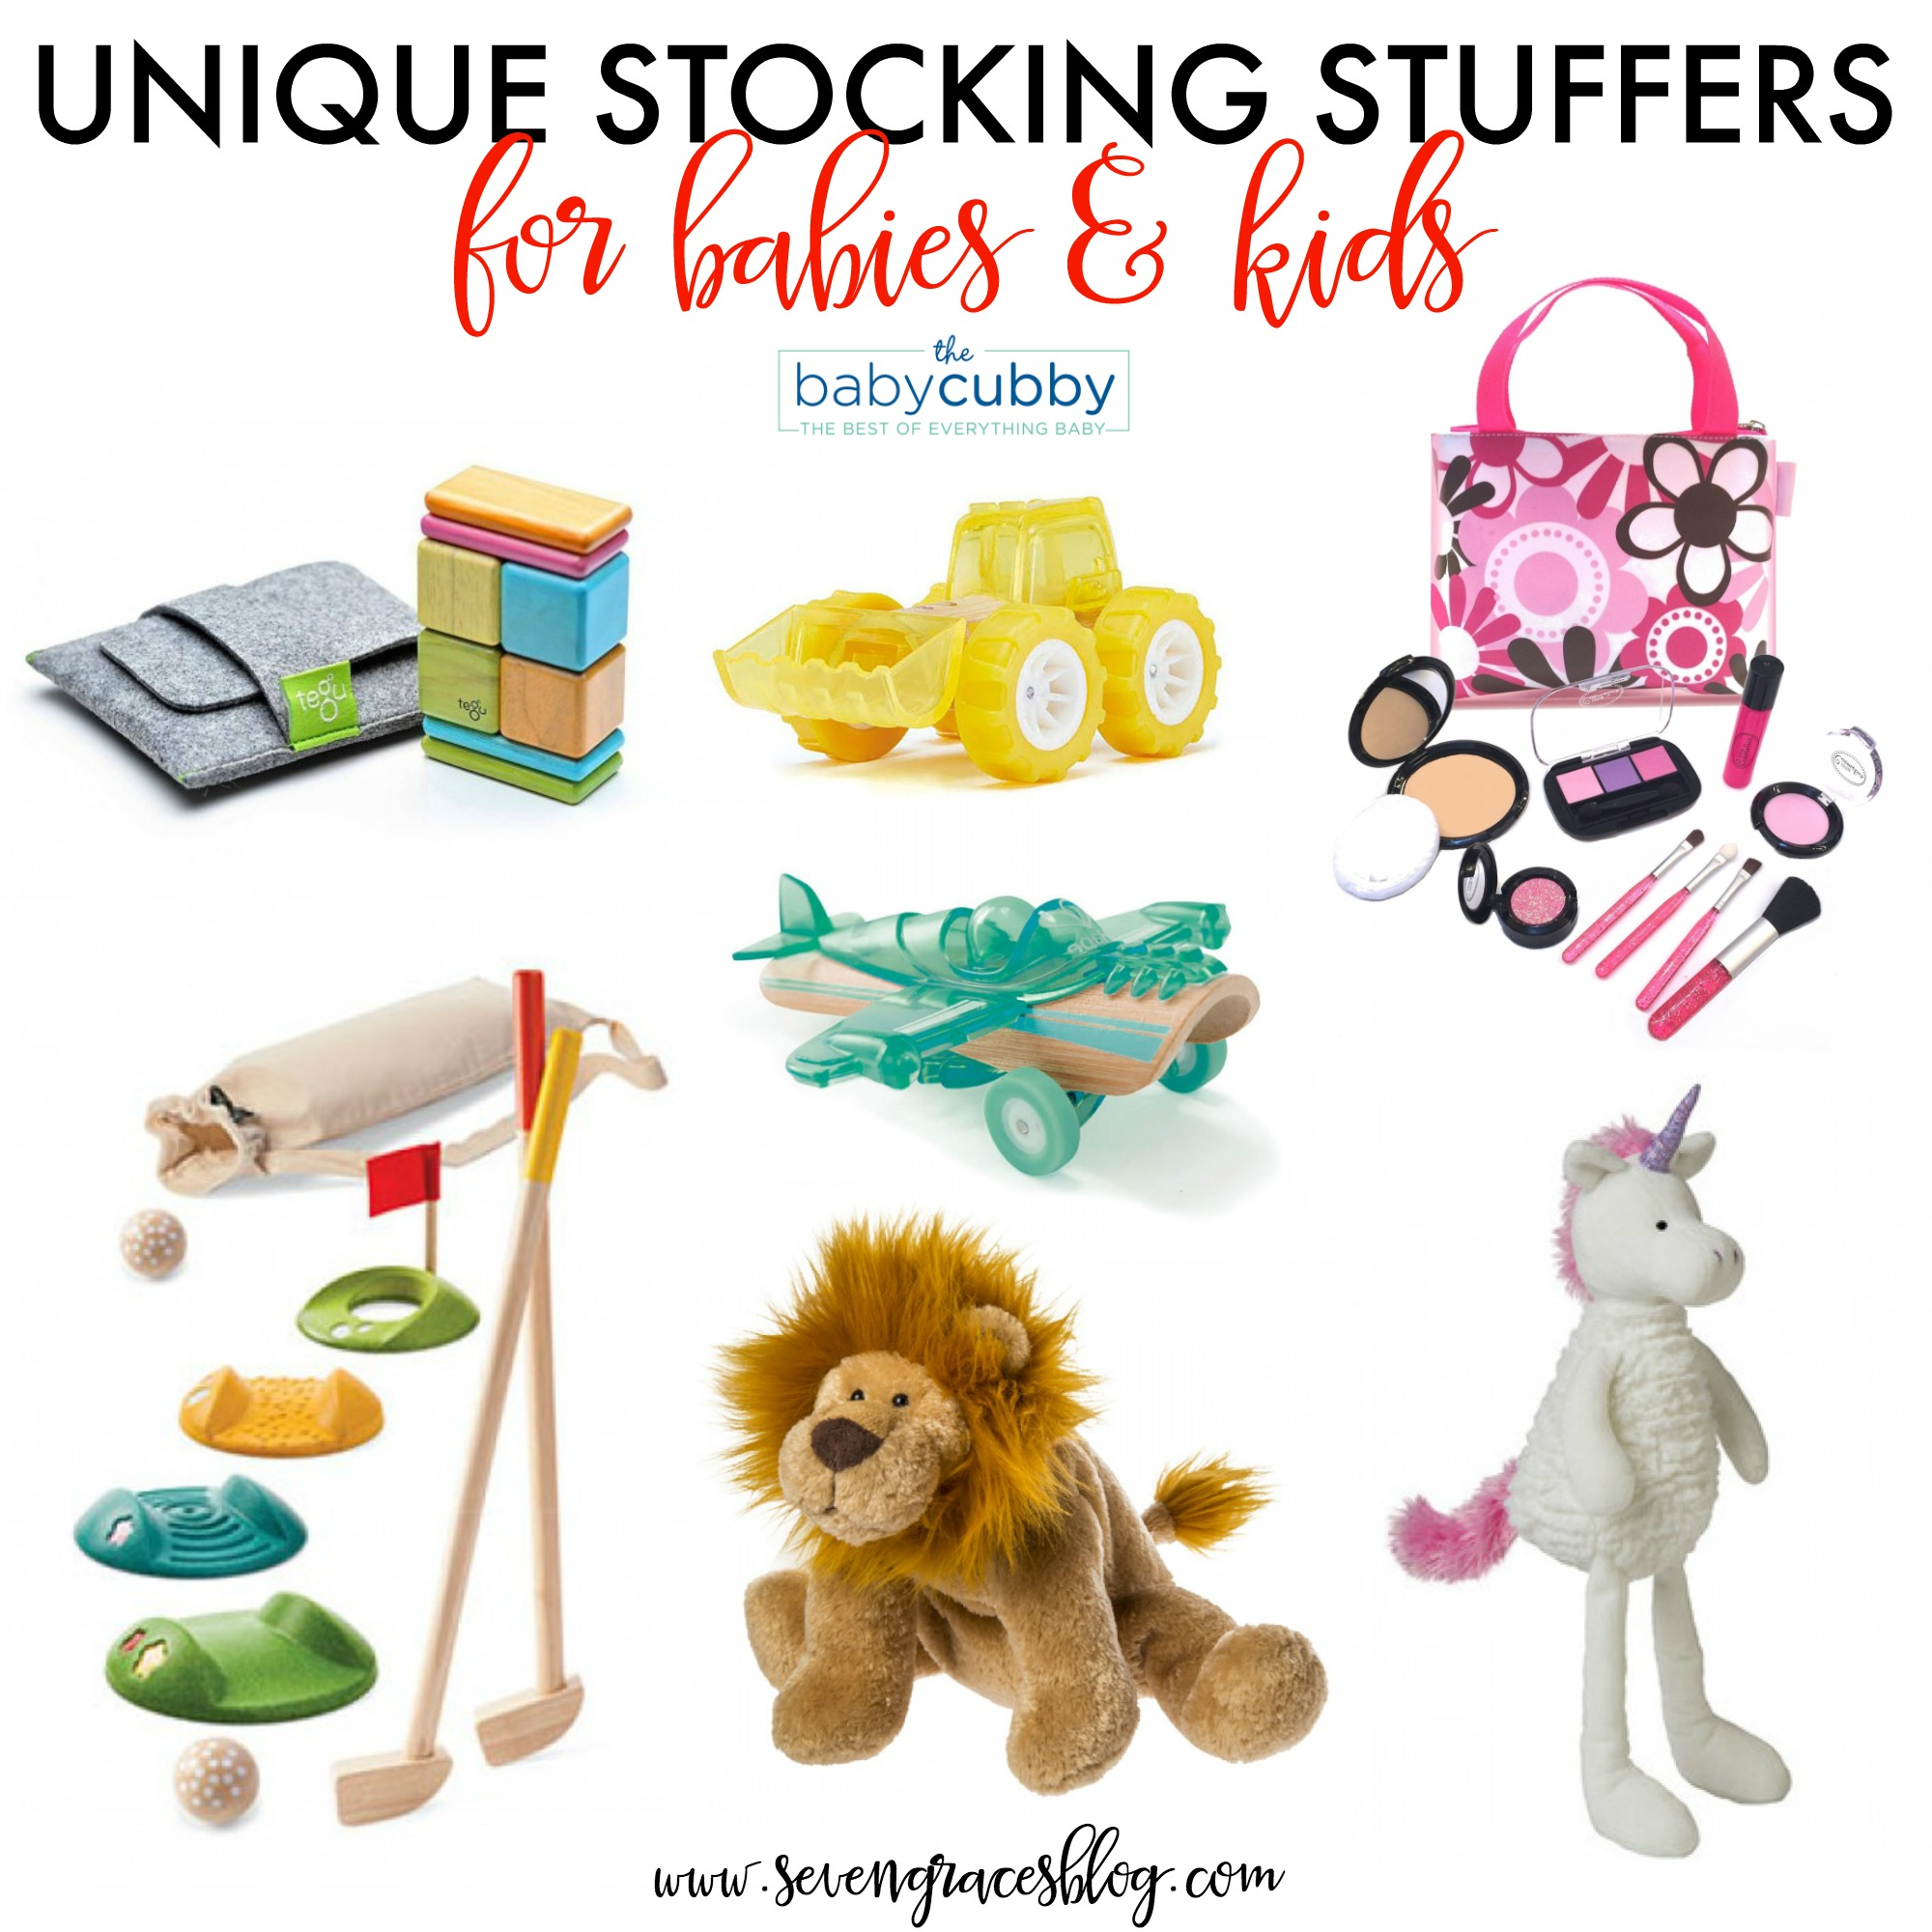 Friday Favorites: Unique Stocking Stuffers Edition